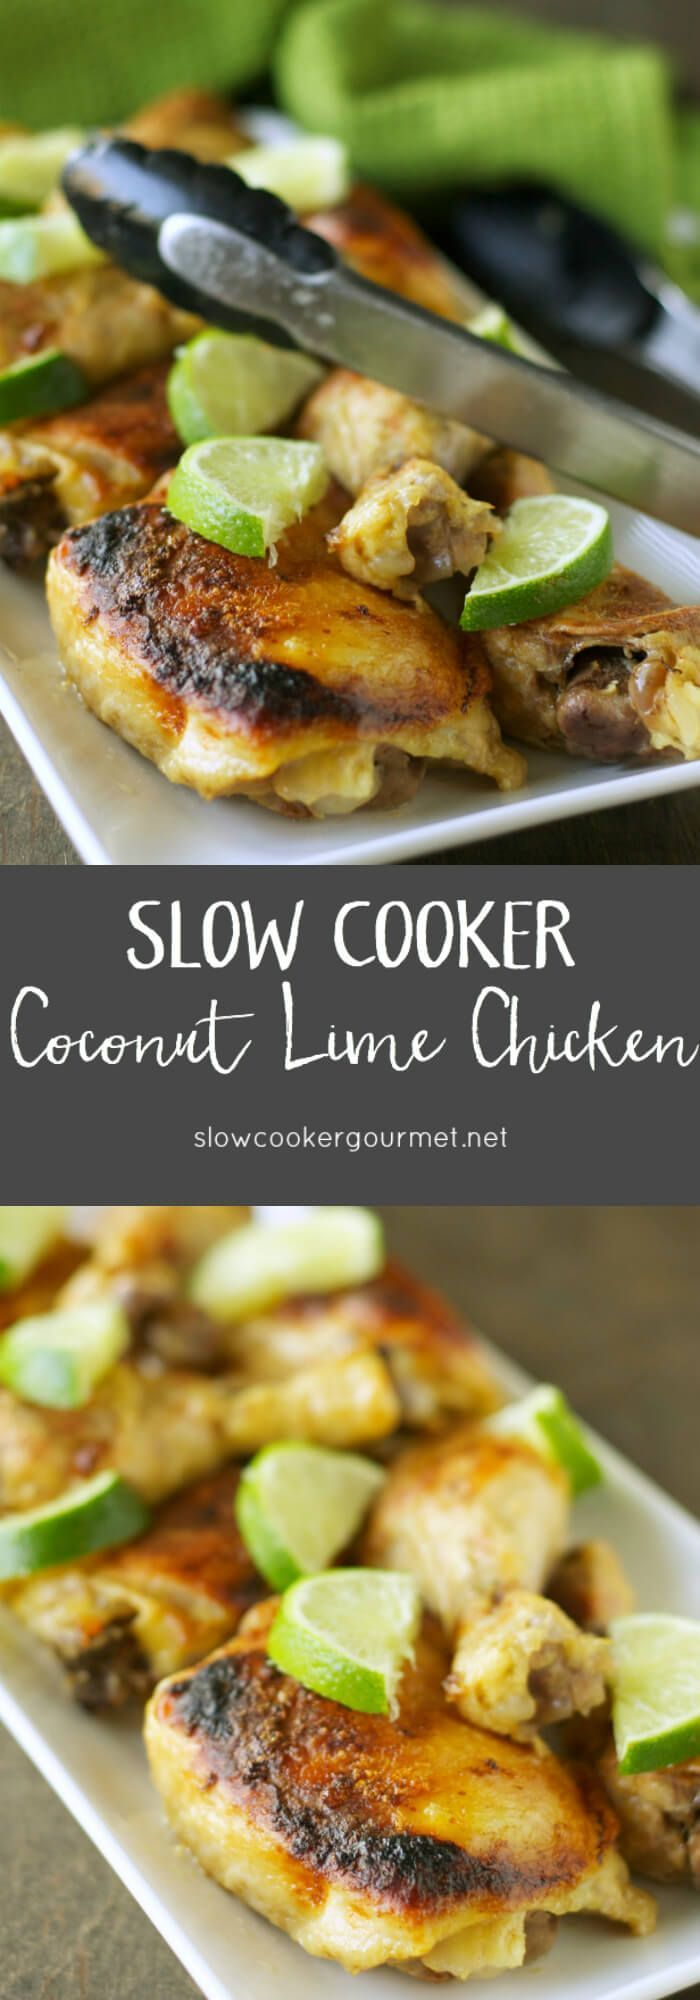 Slow-Cooker-Coconut-Lime-Chicken-longpin